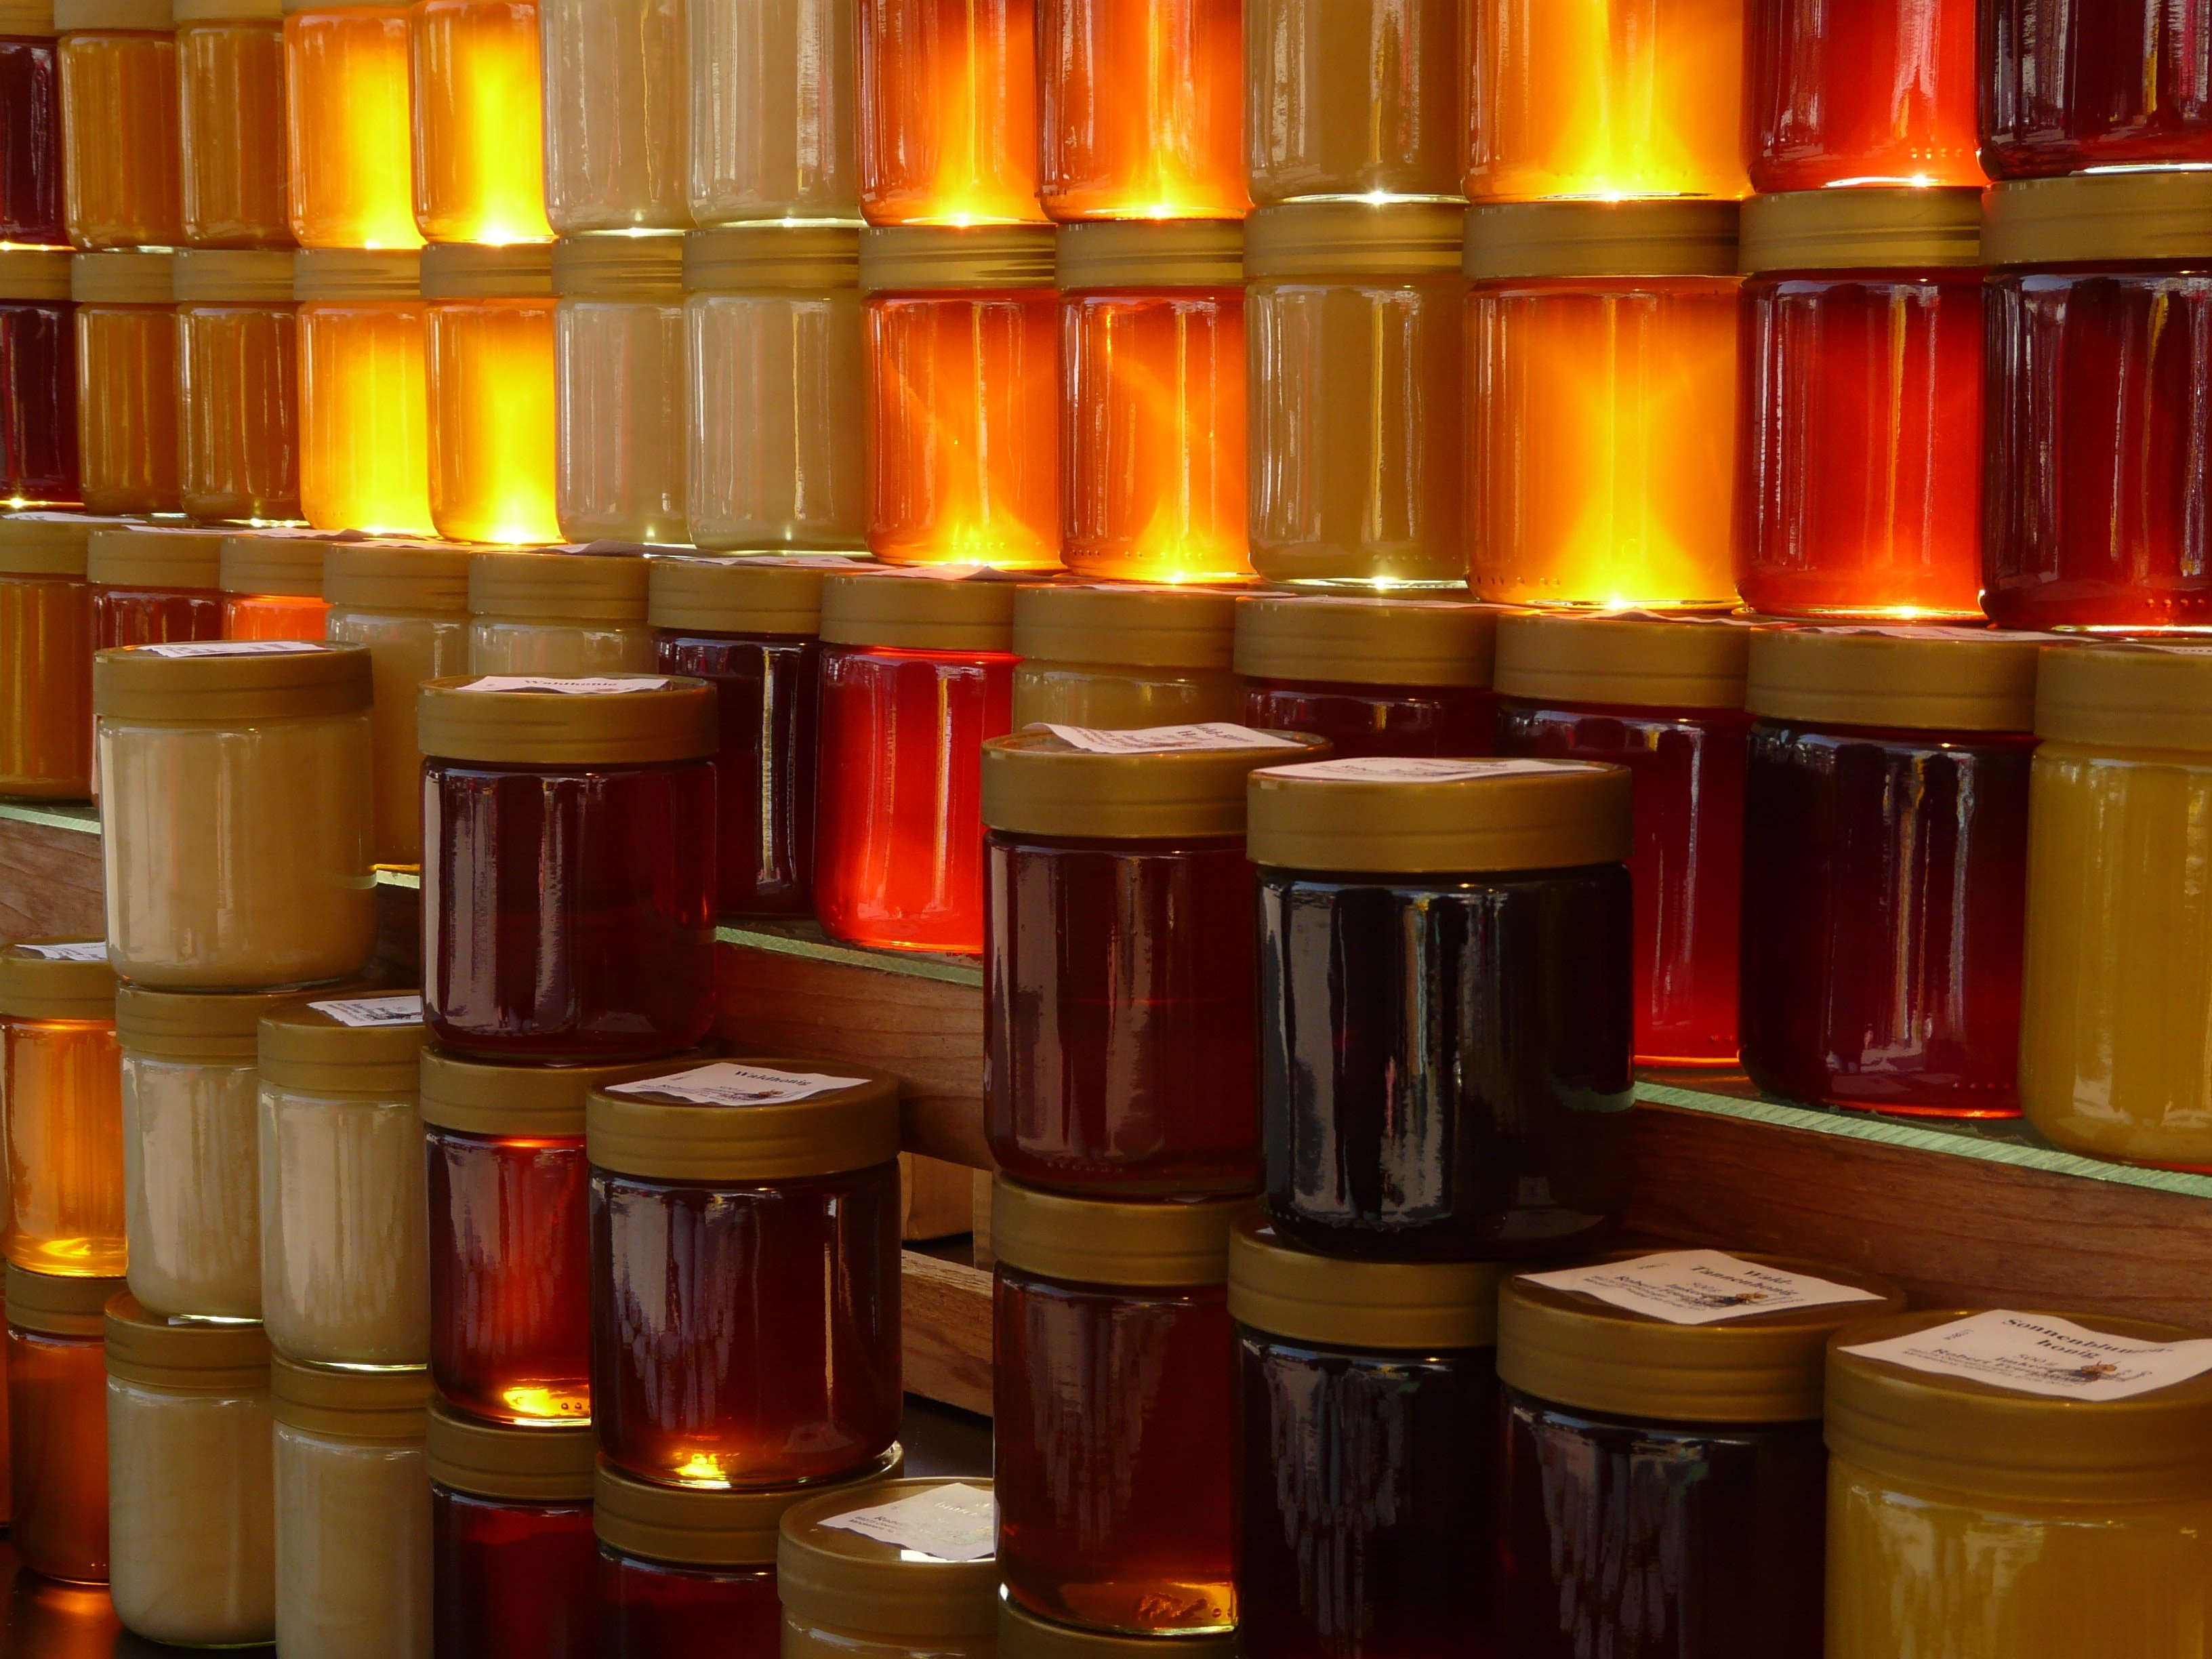 food and beverage - rotten documentary - honey jars stacked honey industry food fraud